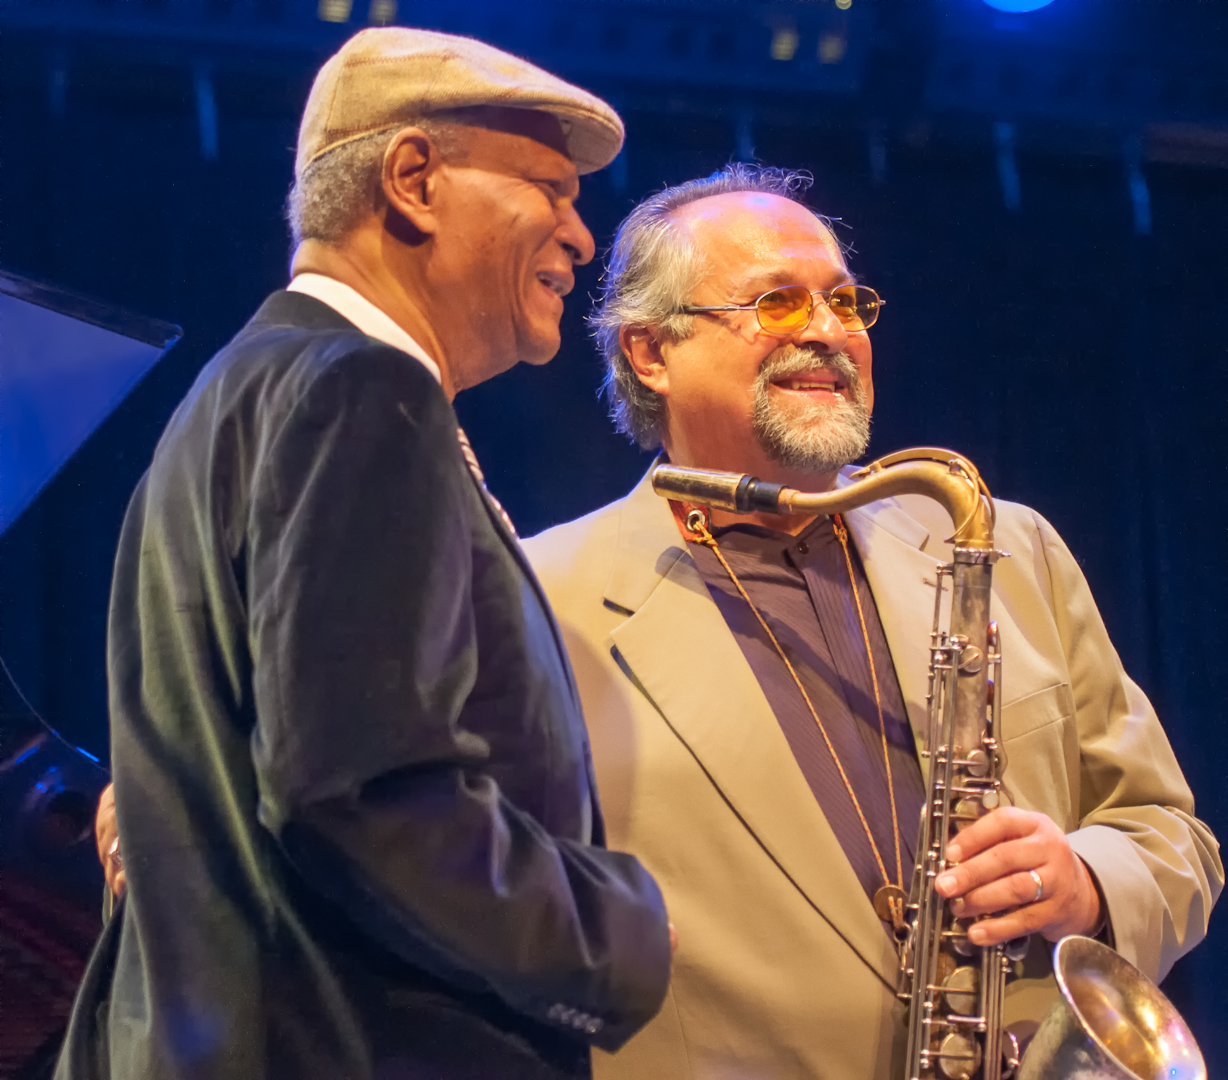 McCoy Tyner and Joe Lovano at Jazz for Obama at Symphony Space